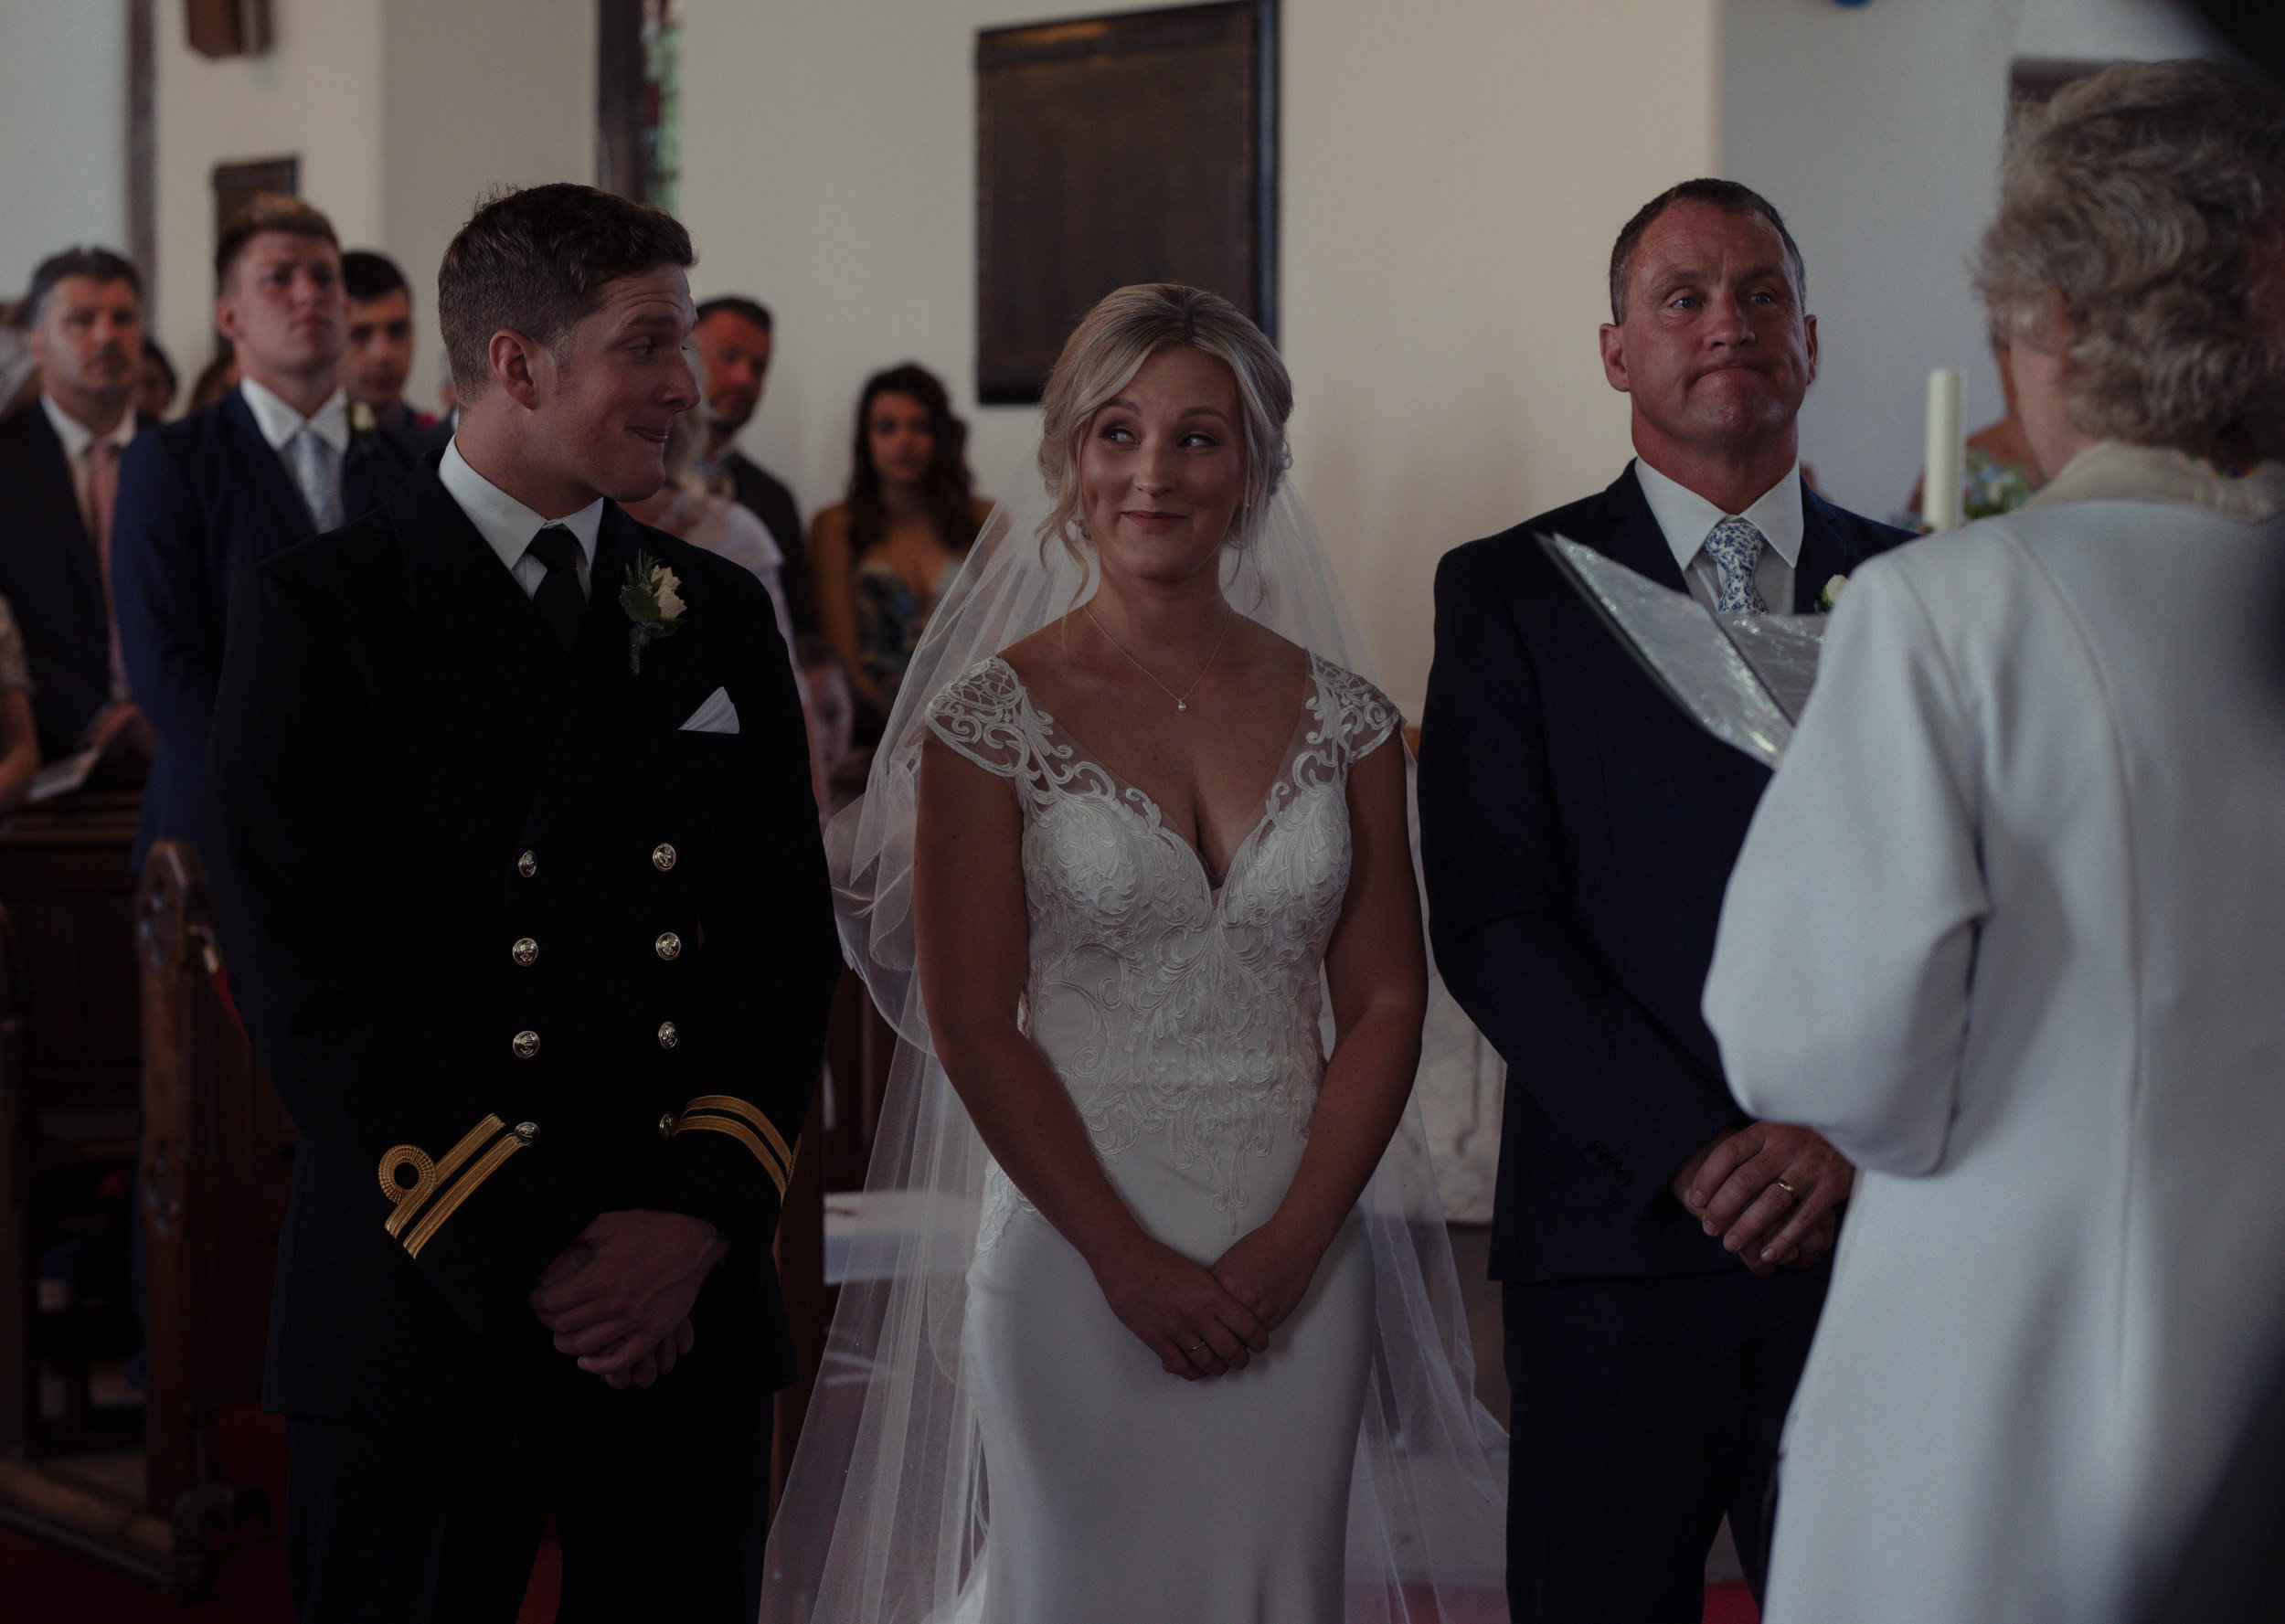 the bride and groom share a comedy glance with each other during the church ceremony